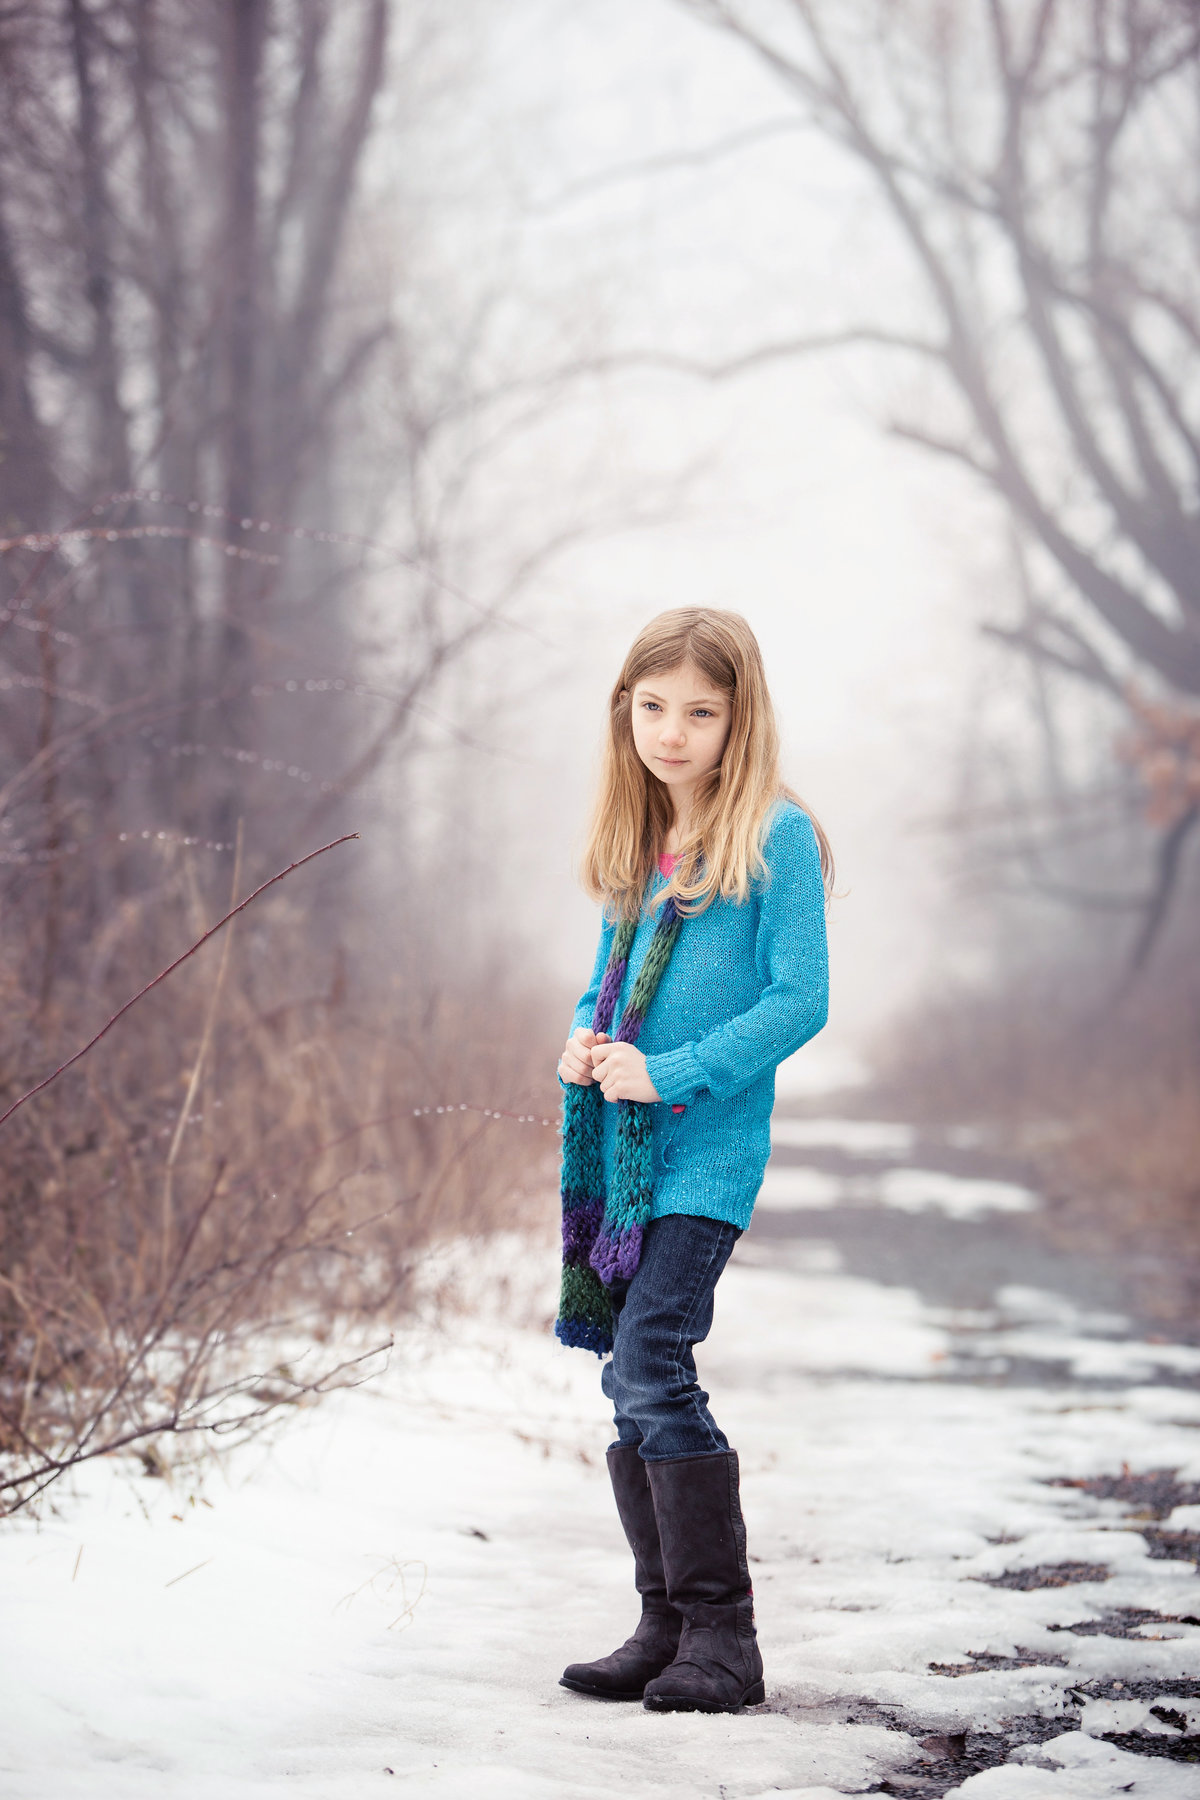 tweens, kids, child photography outdoors in the snow and fog by Hudson Valley NY best professional children's photographer